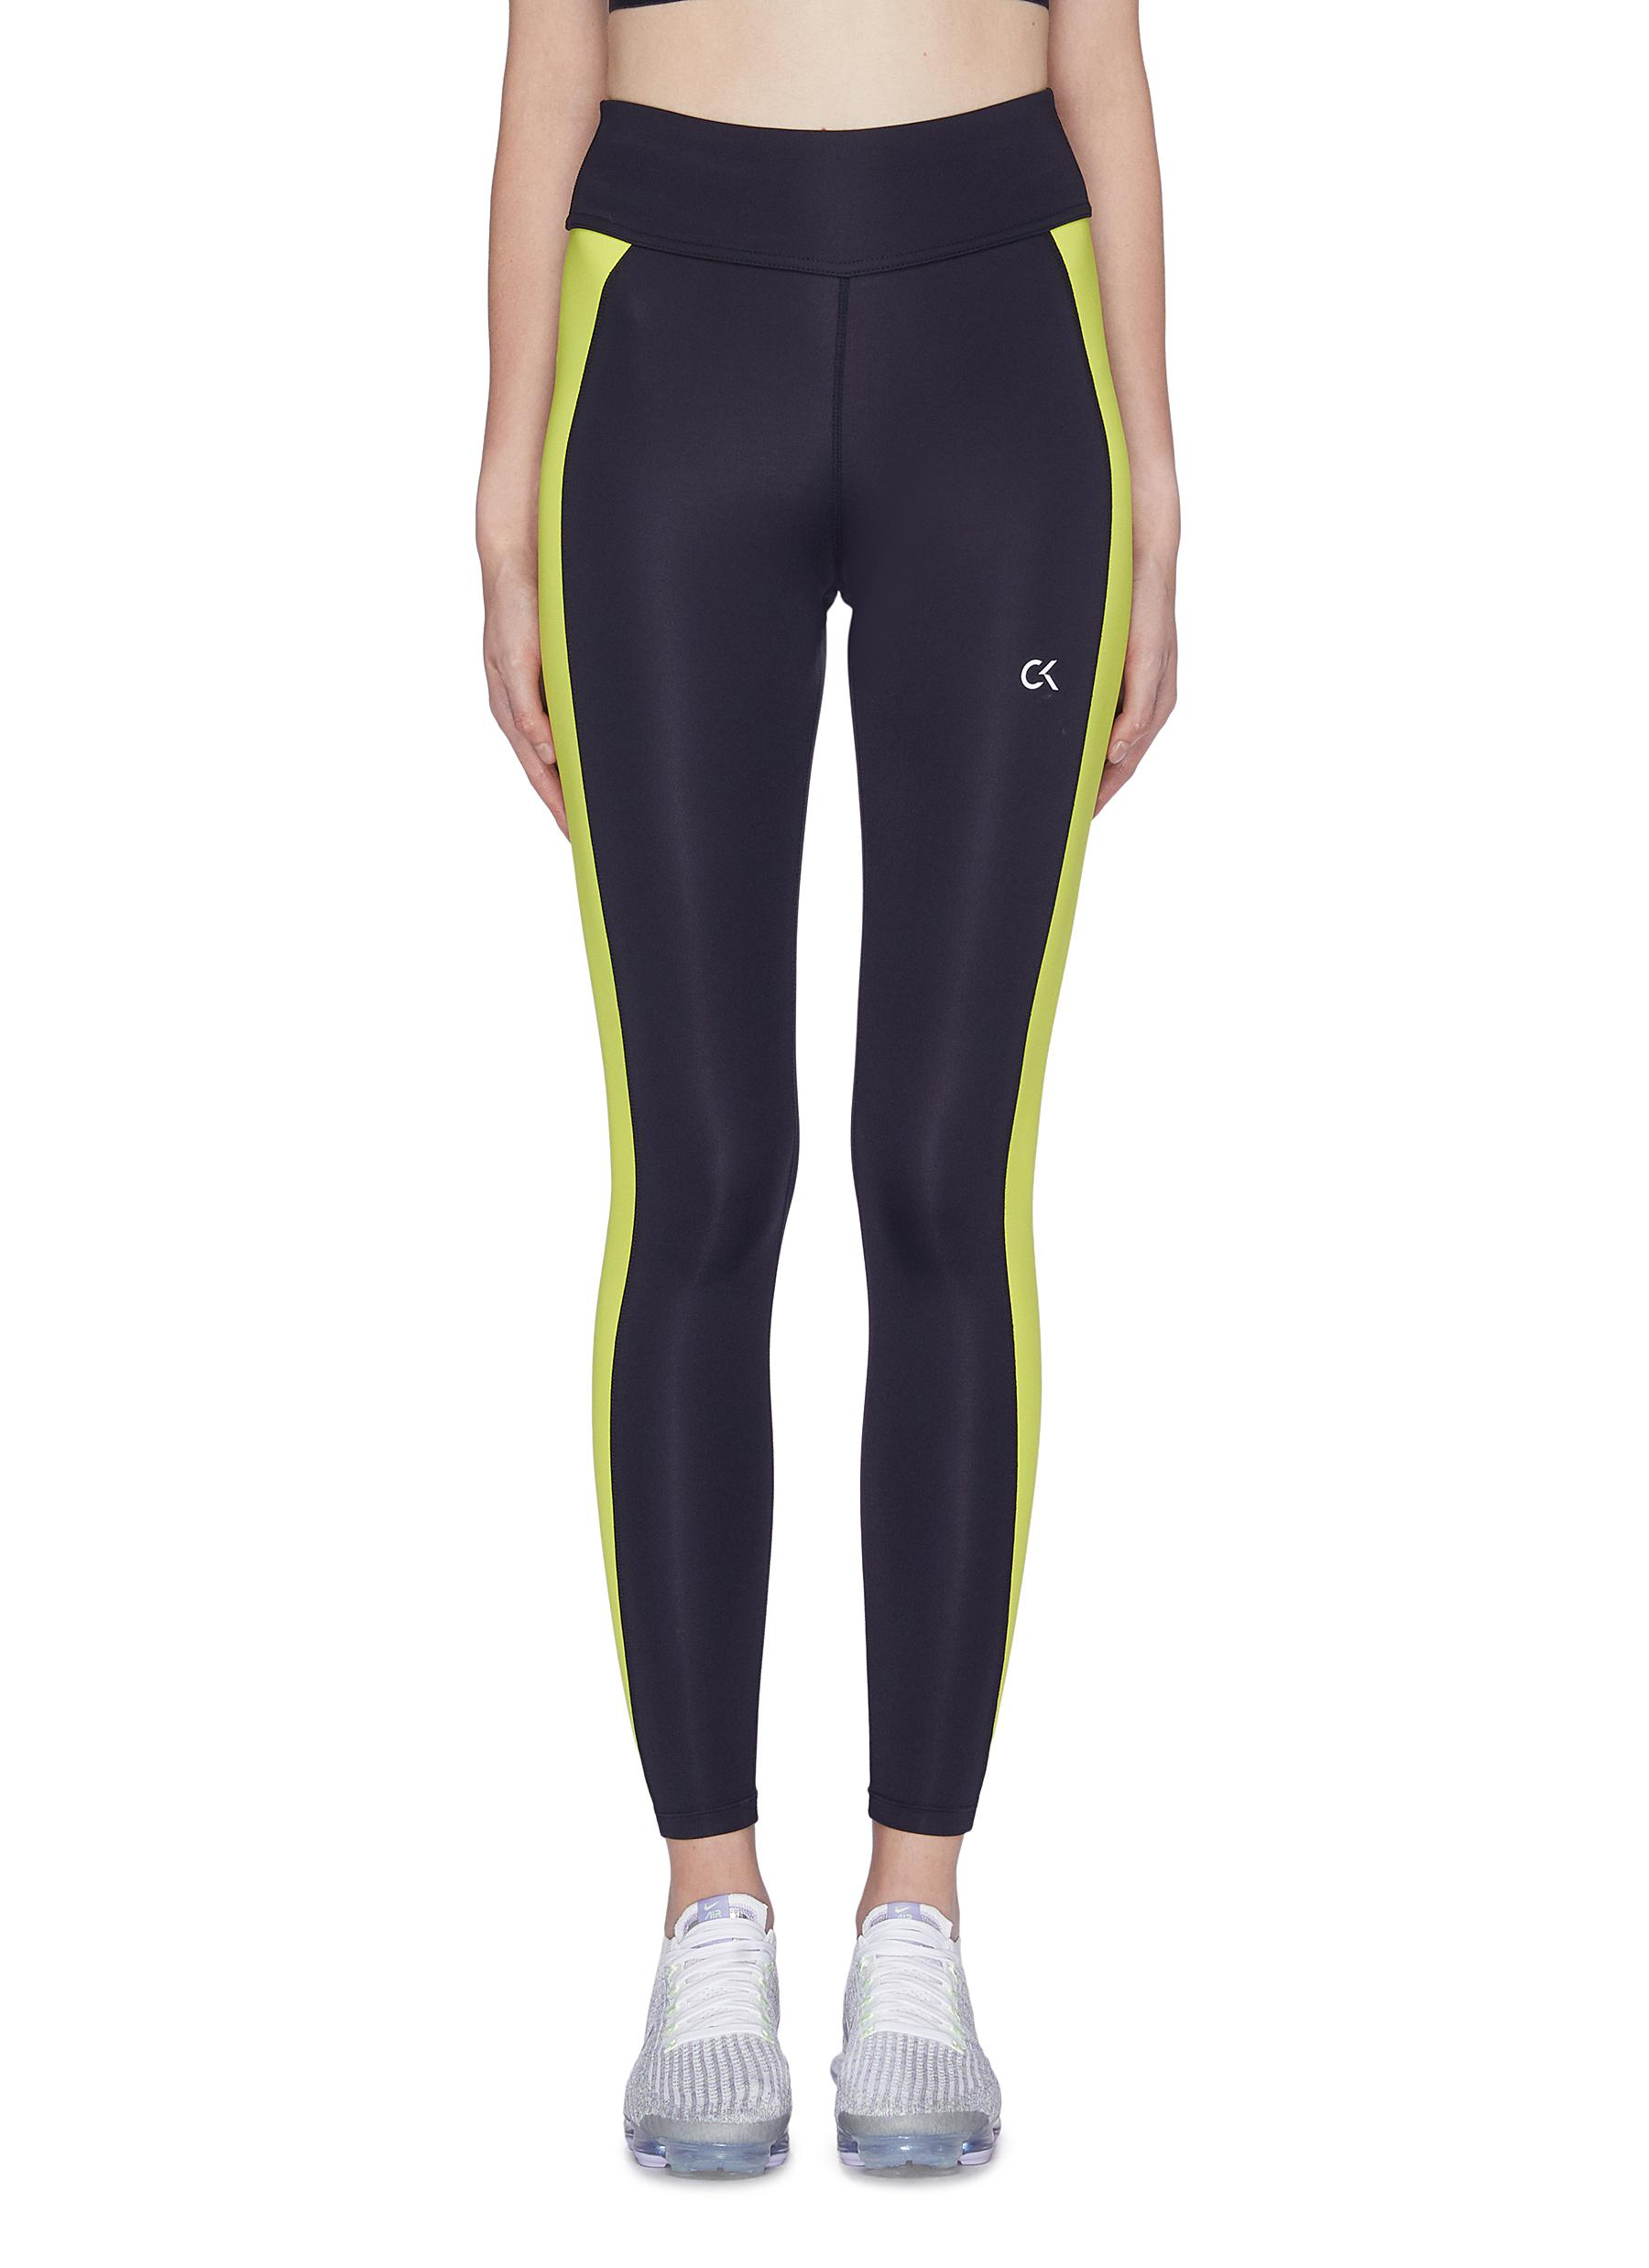 Space Line stripe outseam performance leggings by Calvin Klein Performance